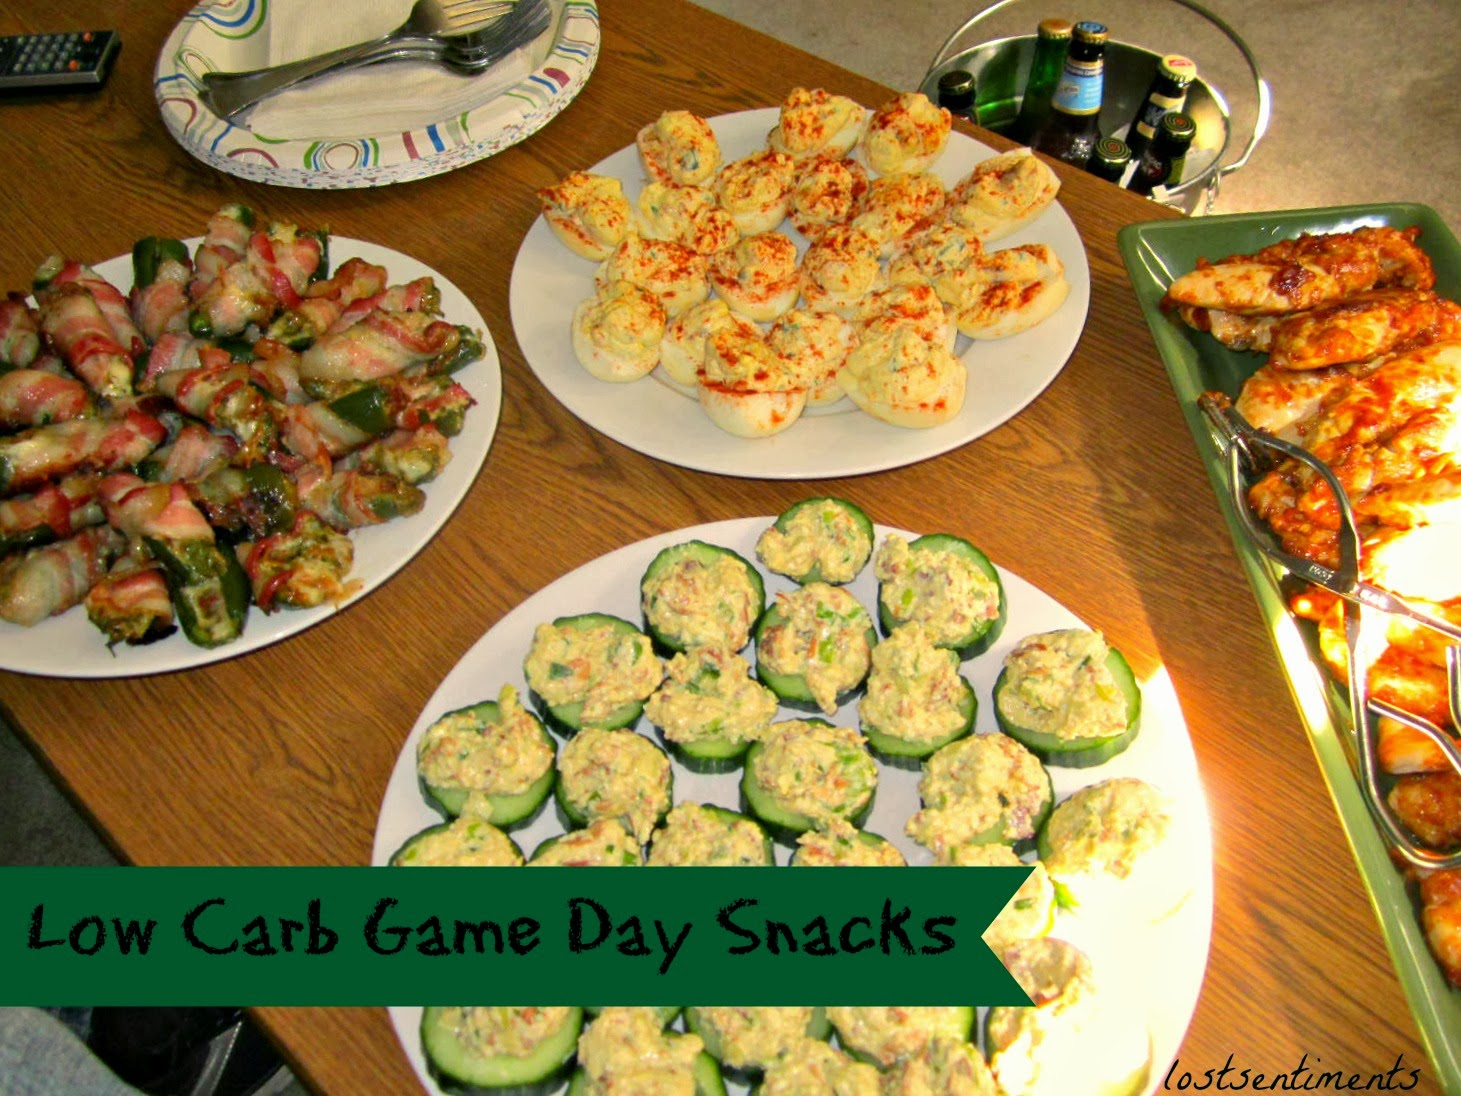 lostsentiments low carb game day recipe eats. Black Bedroom Furniture Sets. Home Design Ideas